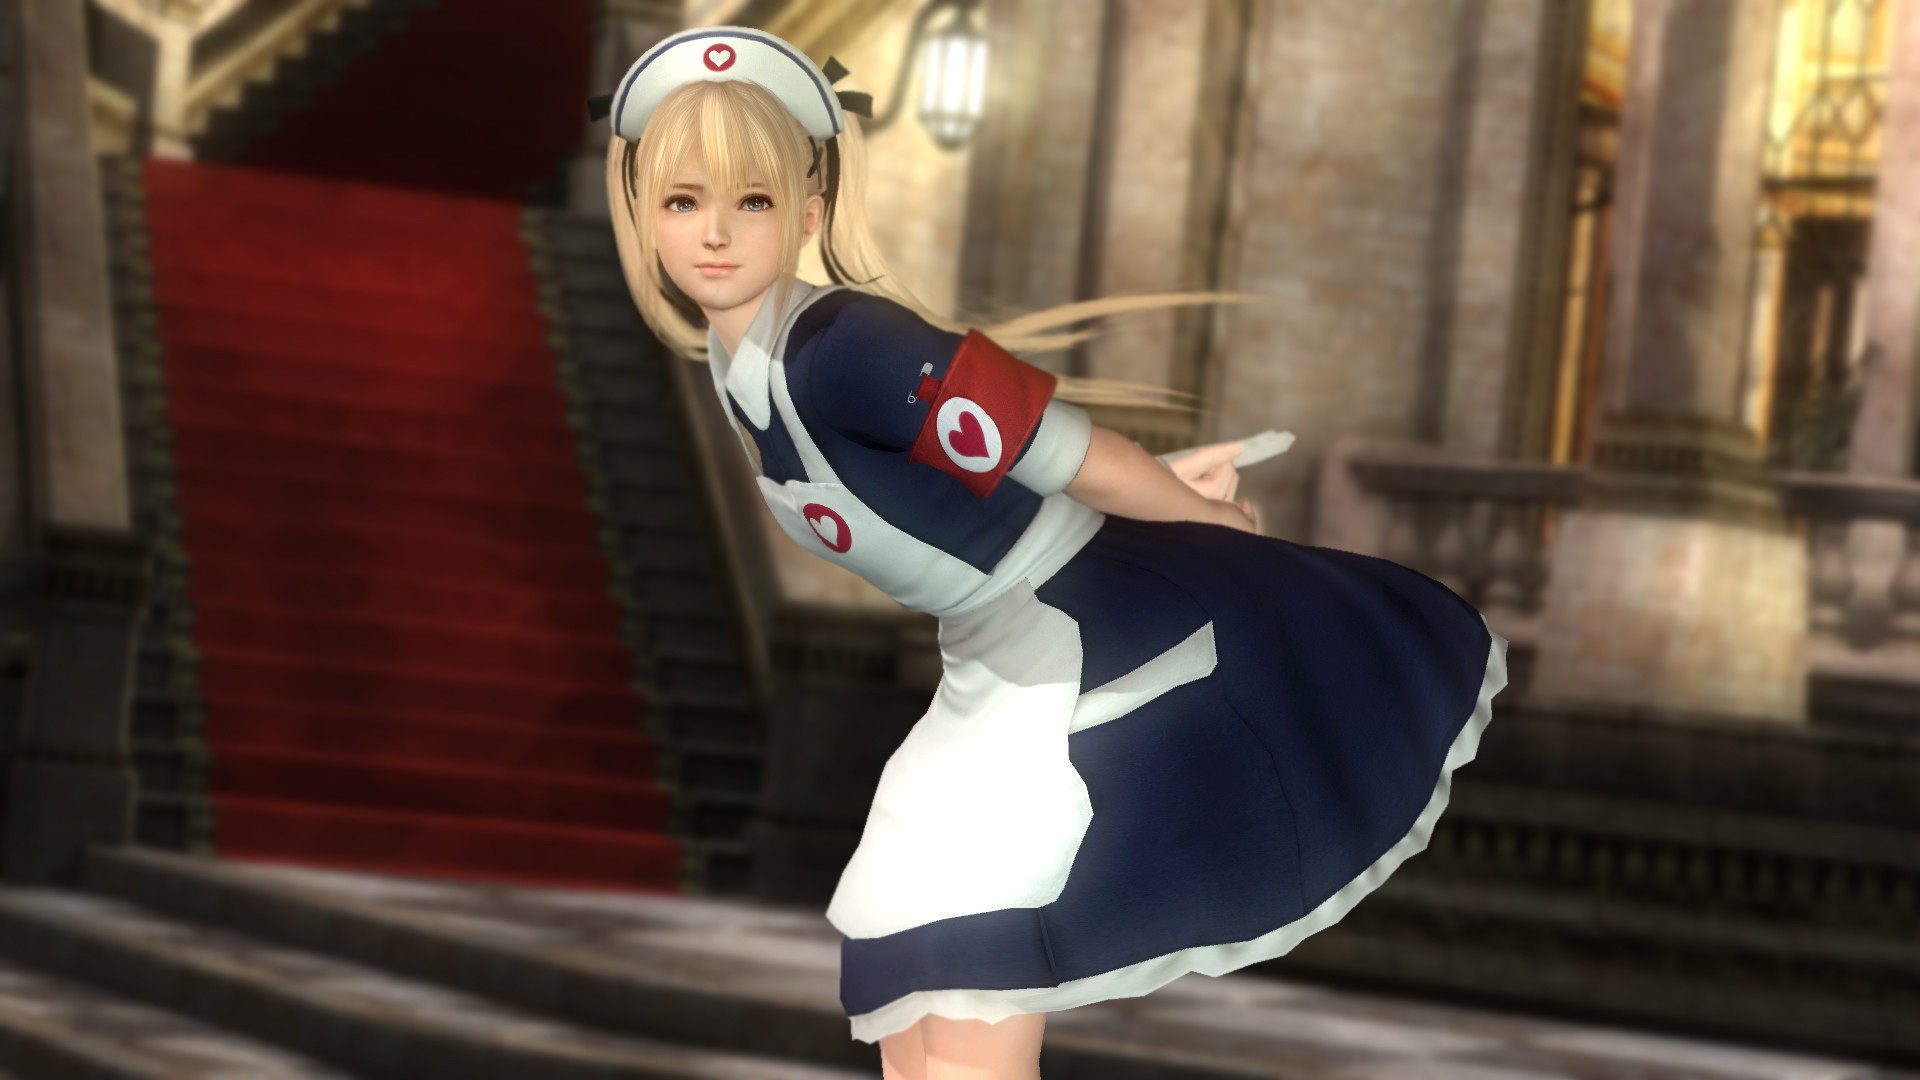 1920x1080 49 best Dead Or Alive images on Pinterest | Dead or alive 5, Google search  and Butterfly